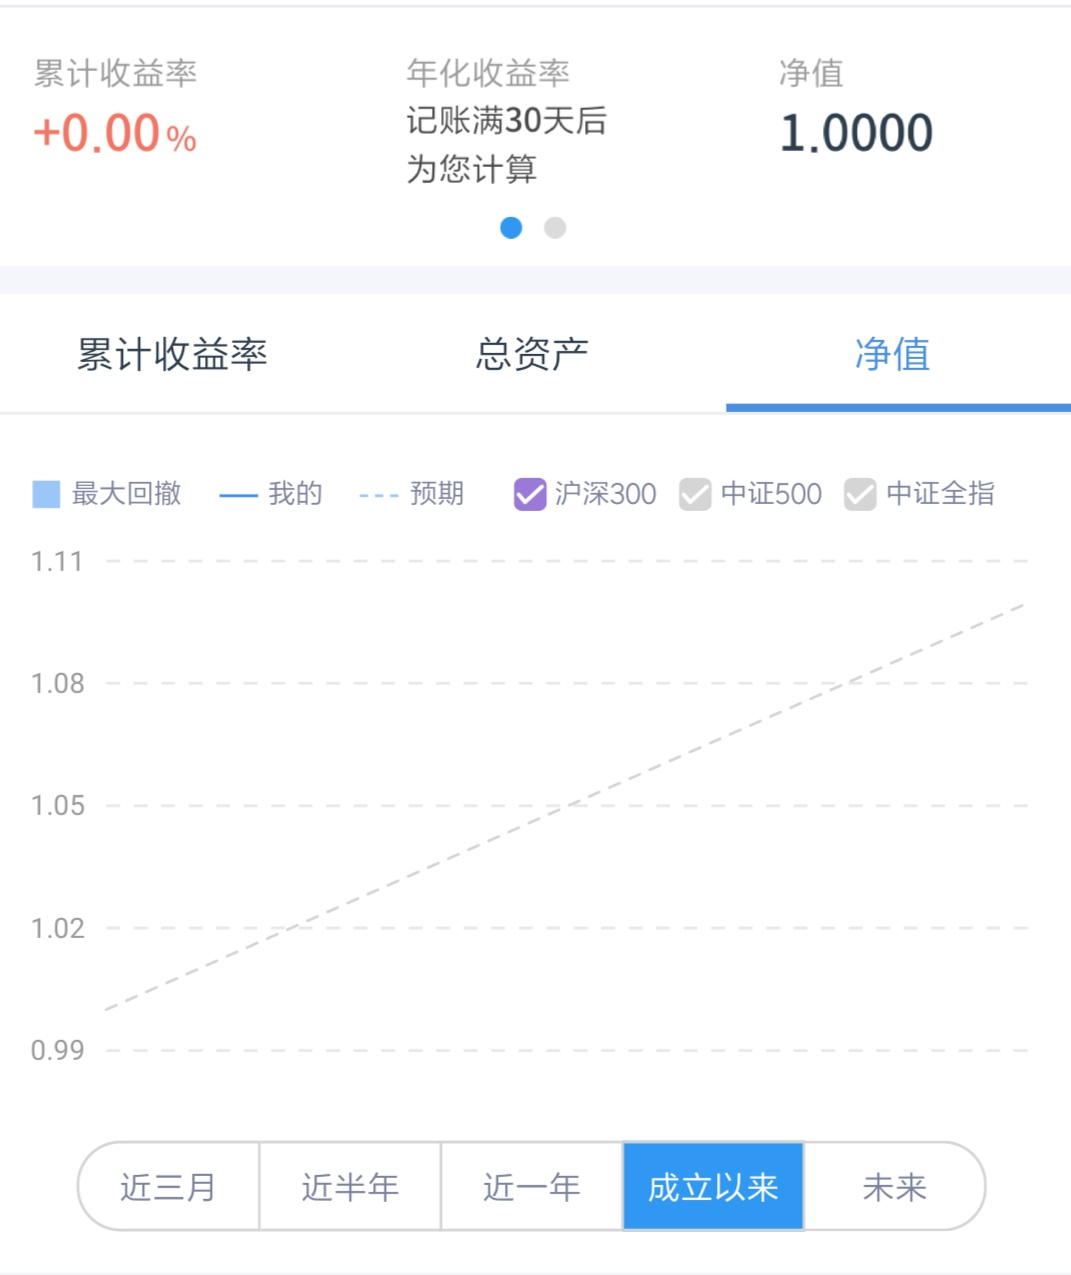 Screenshot_2019-01-01-18-40-12-386_com.tencent.mm.png